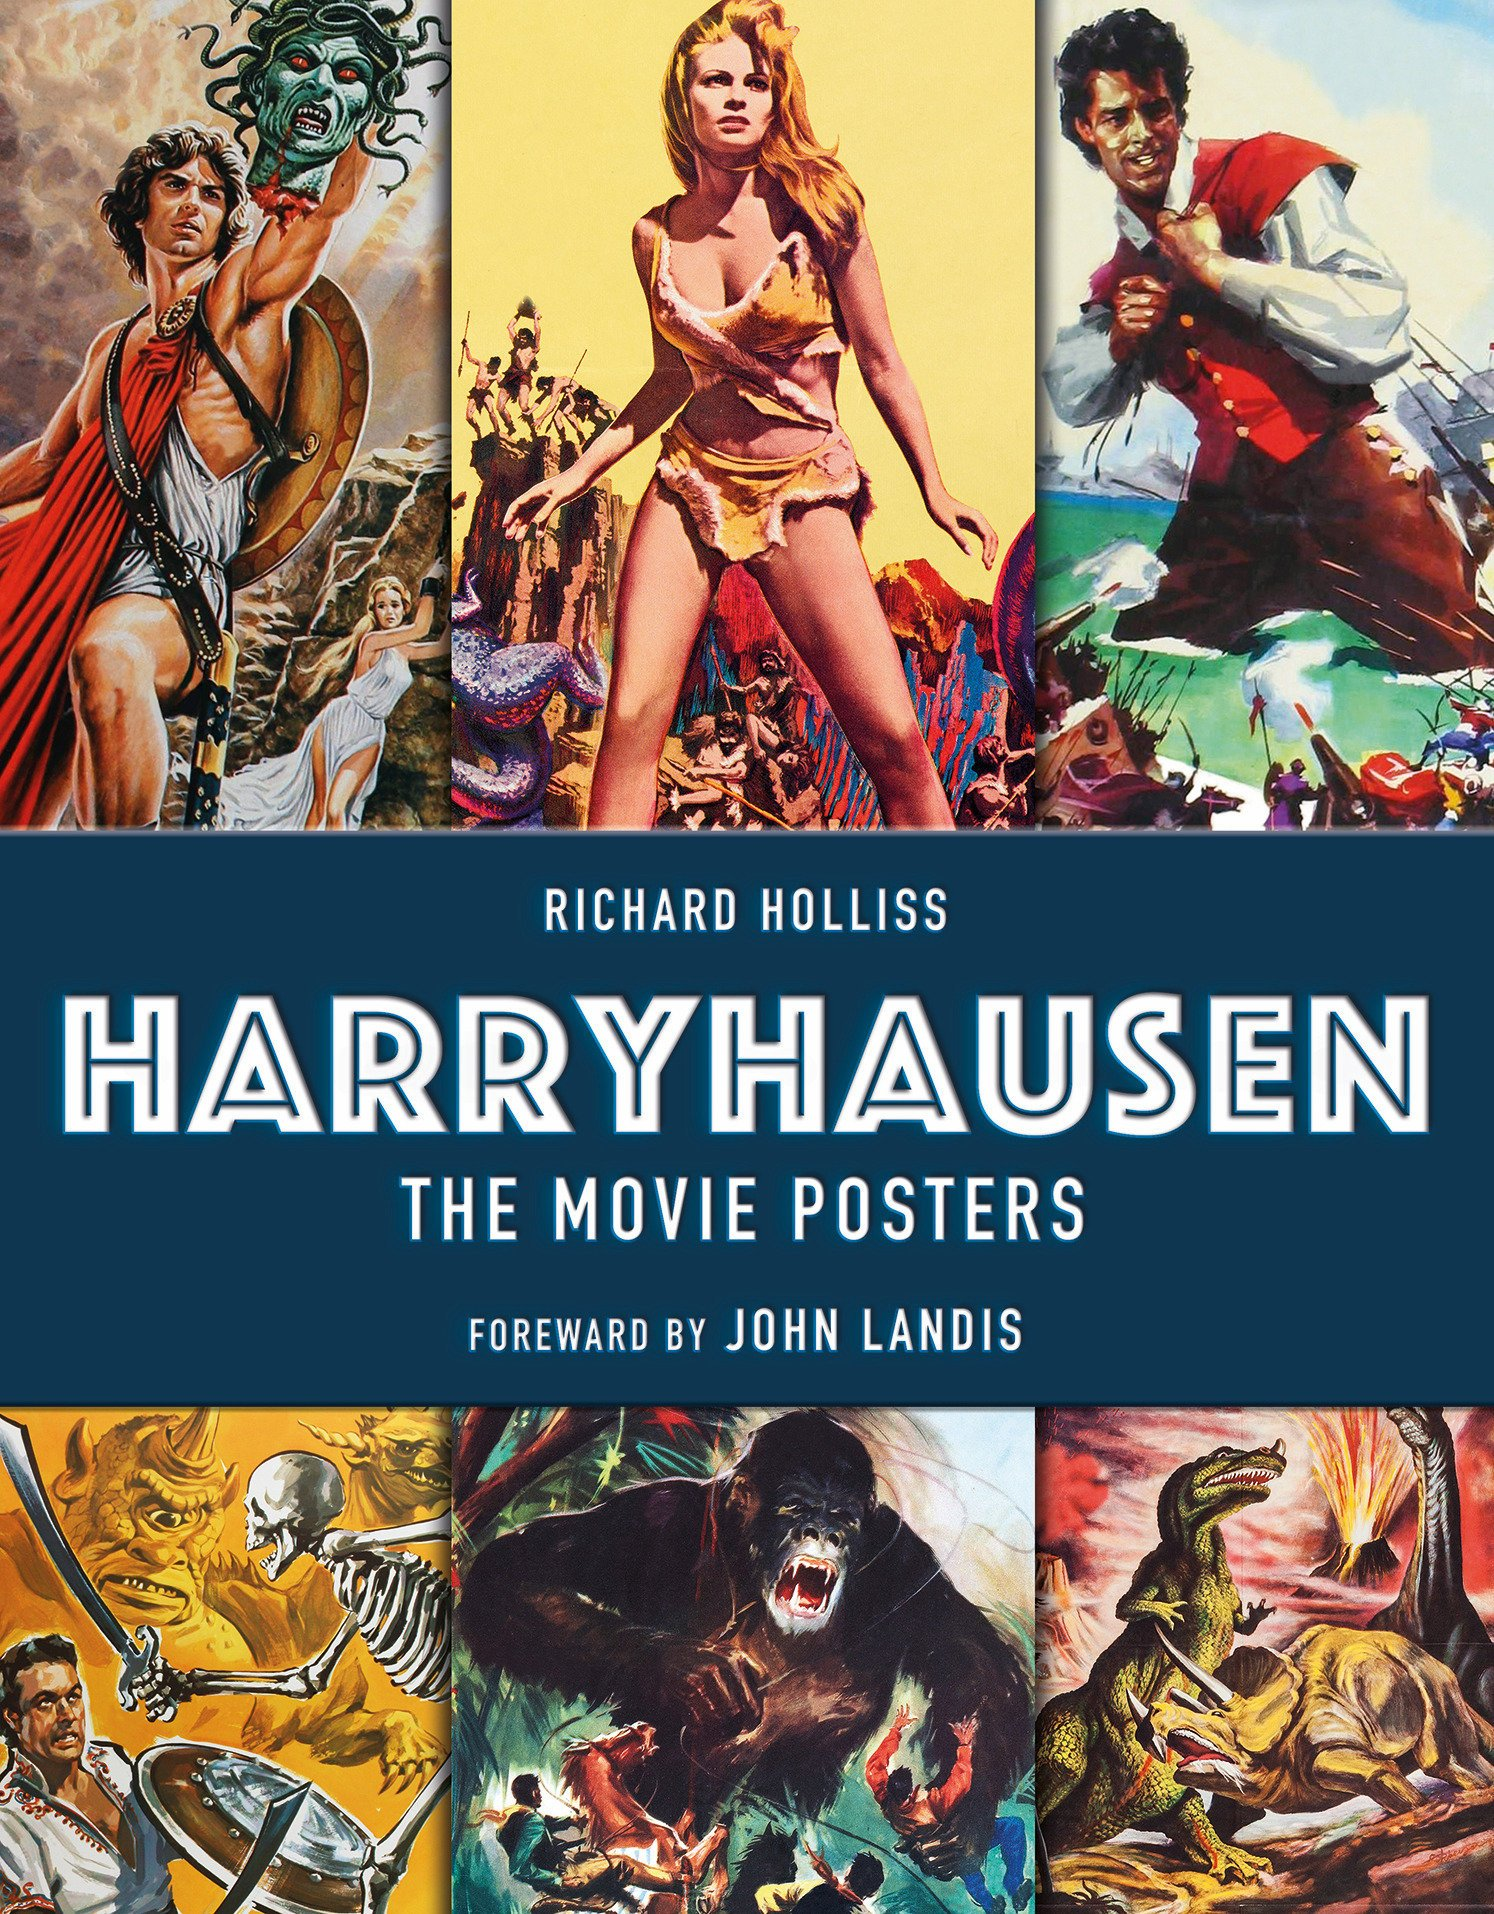 Harryhausen, The Movie Posters